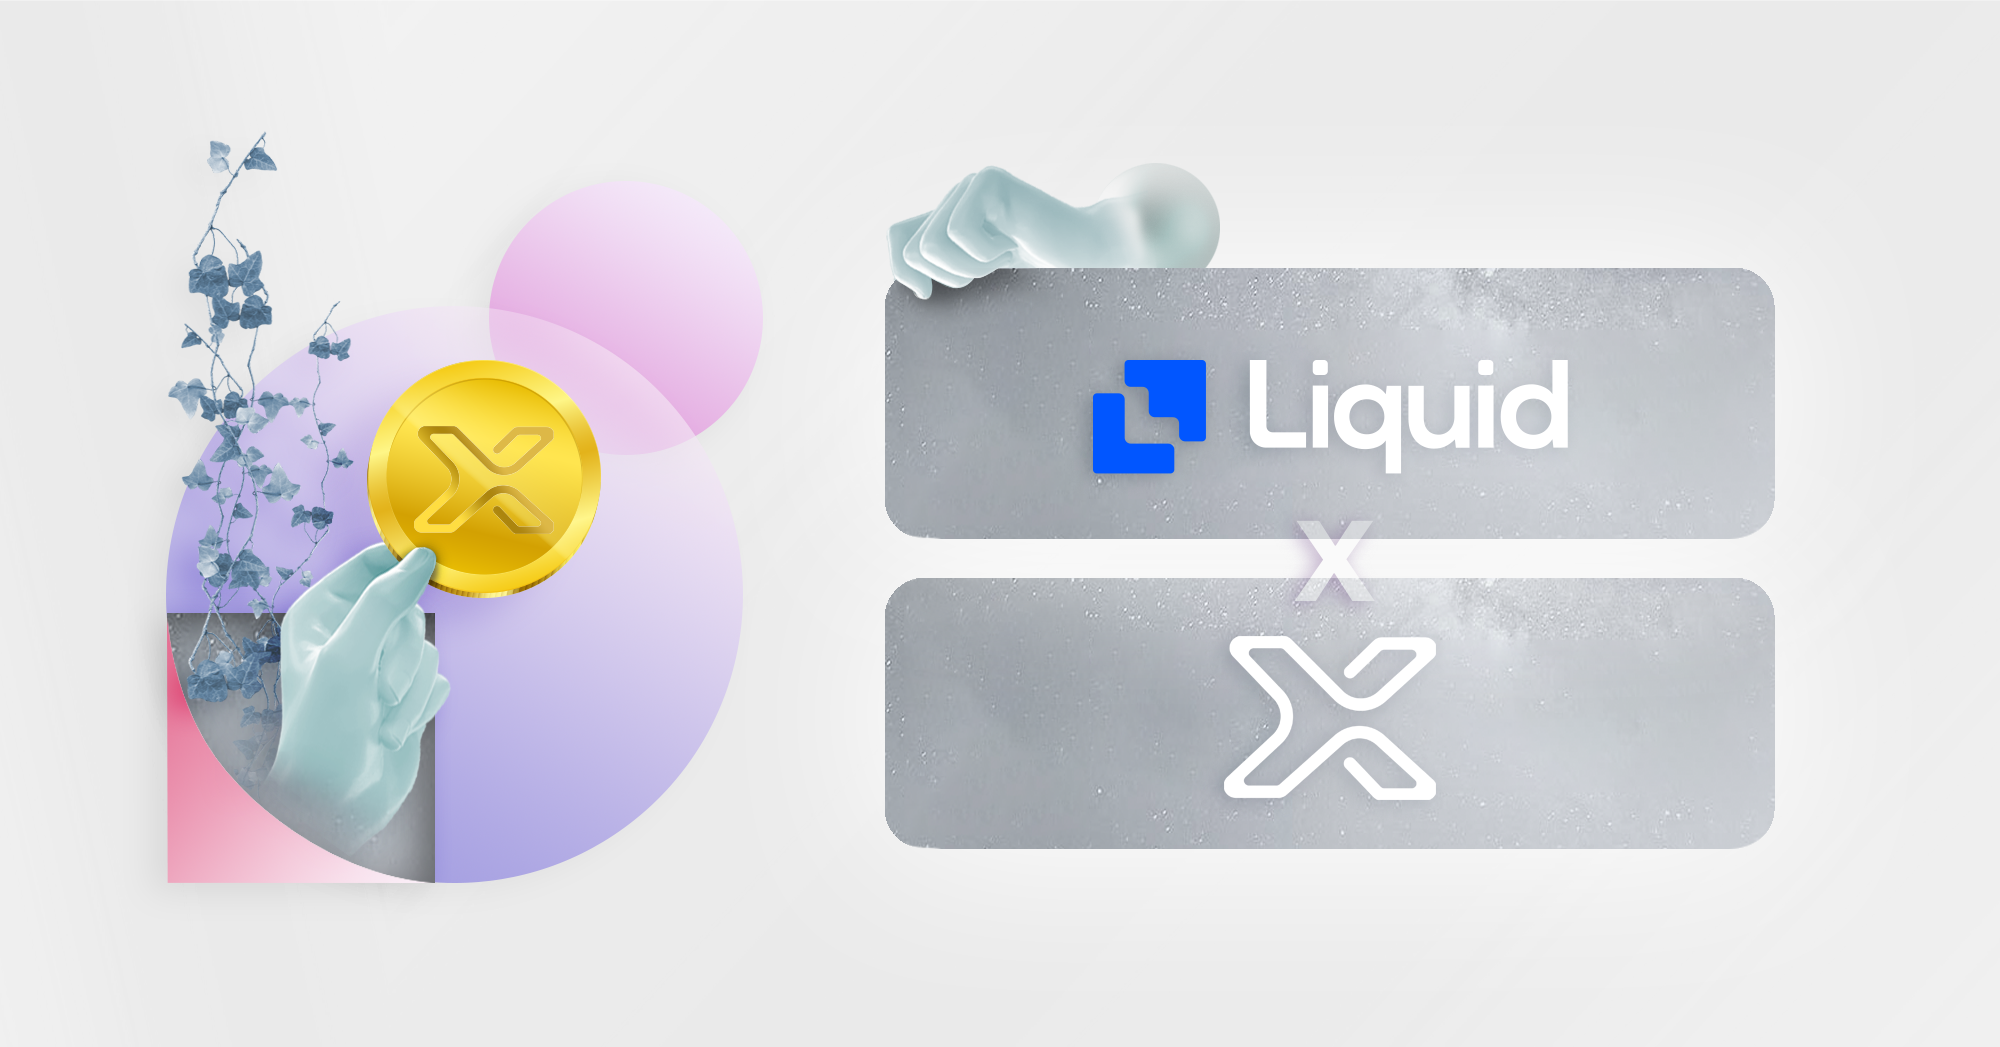 Liquid is thrilled to collaborate with XENO to release the XNO token